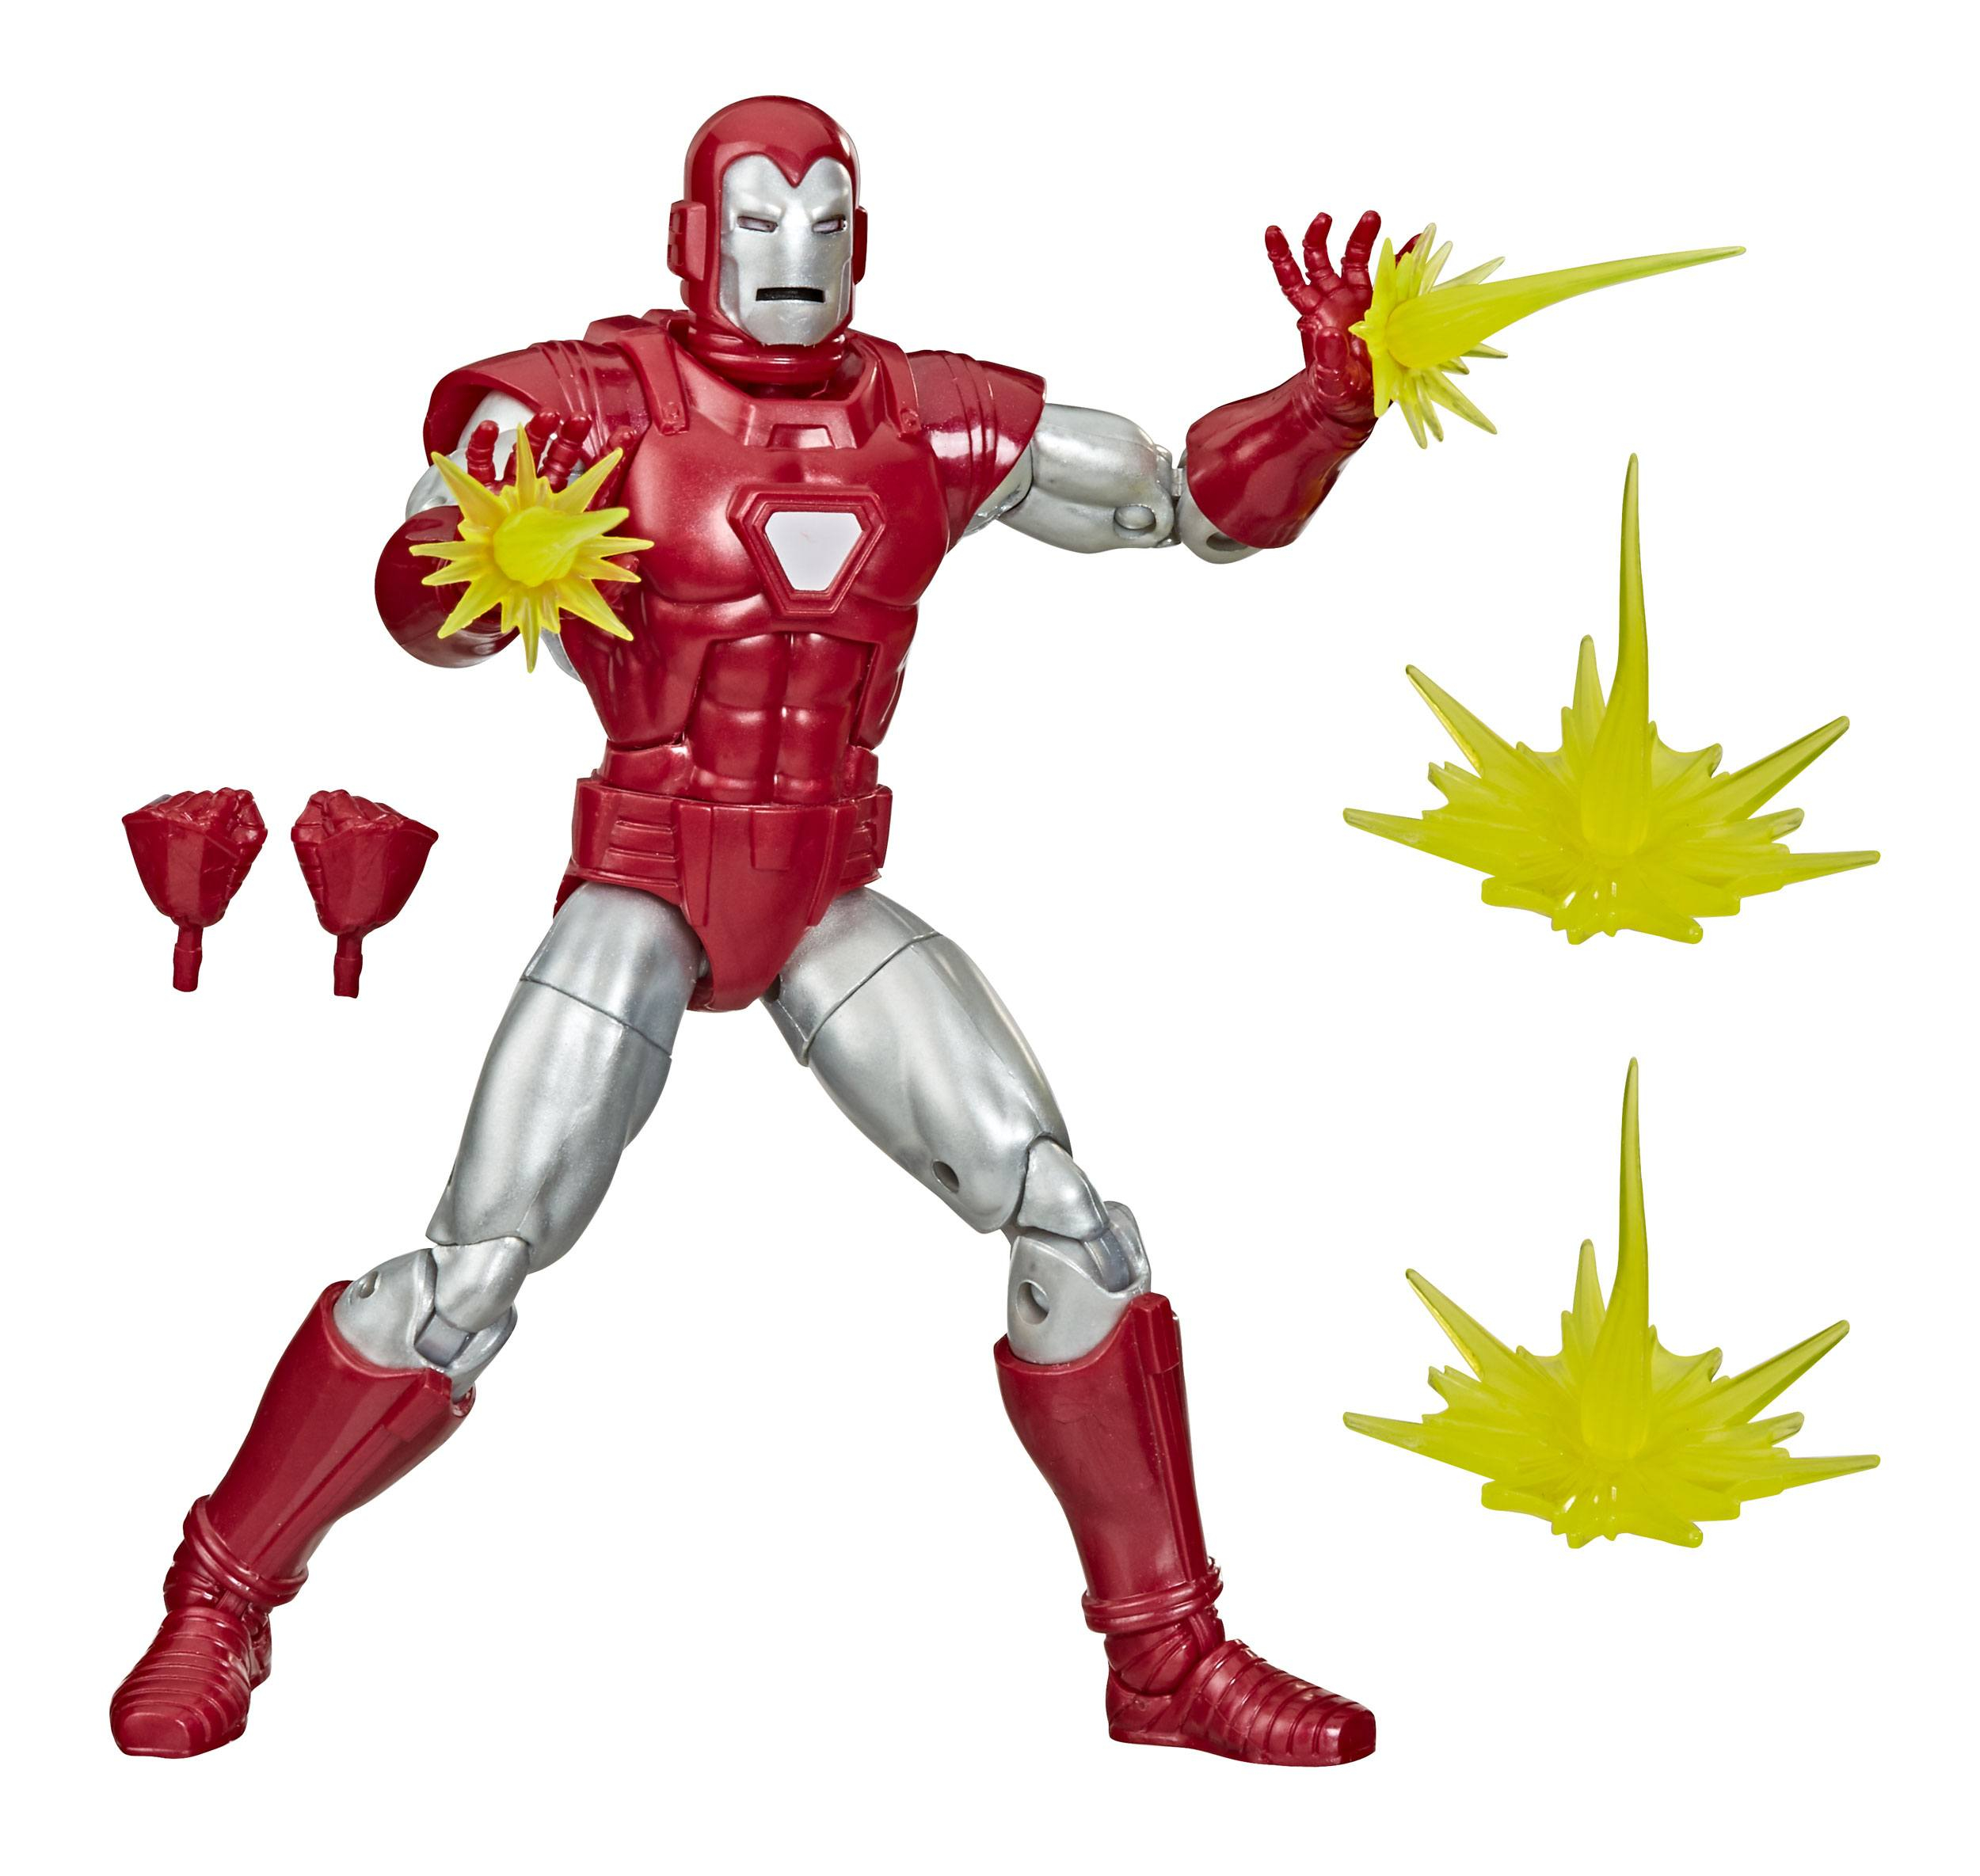 *PREORDER* Marvel Legends Series Action Figure: IRON MAN - SILVER CENTURION by Hasbro